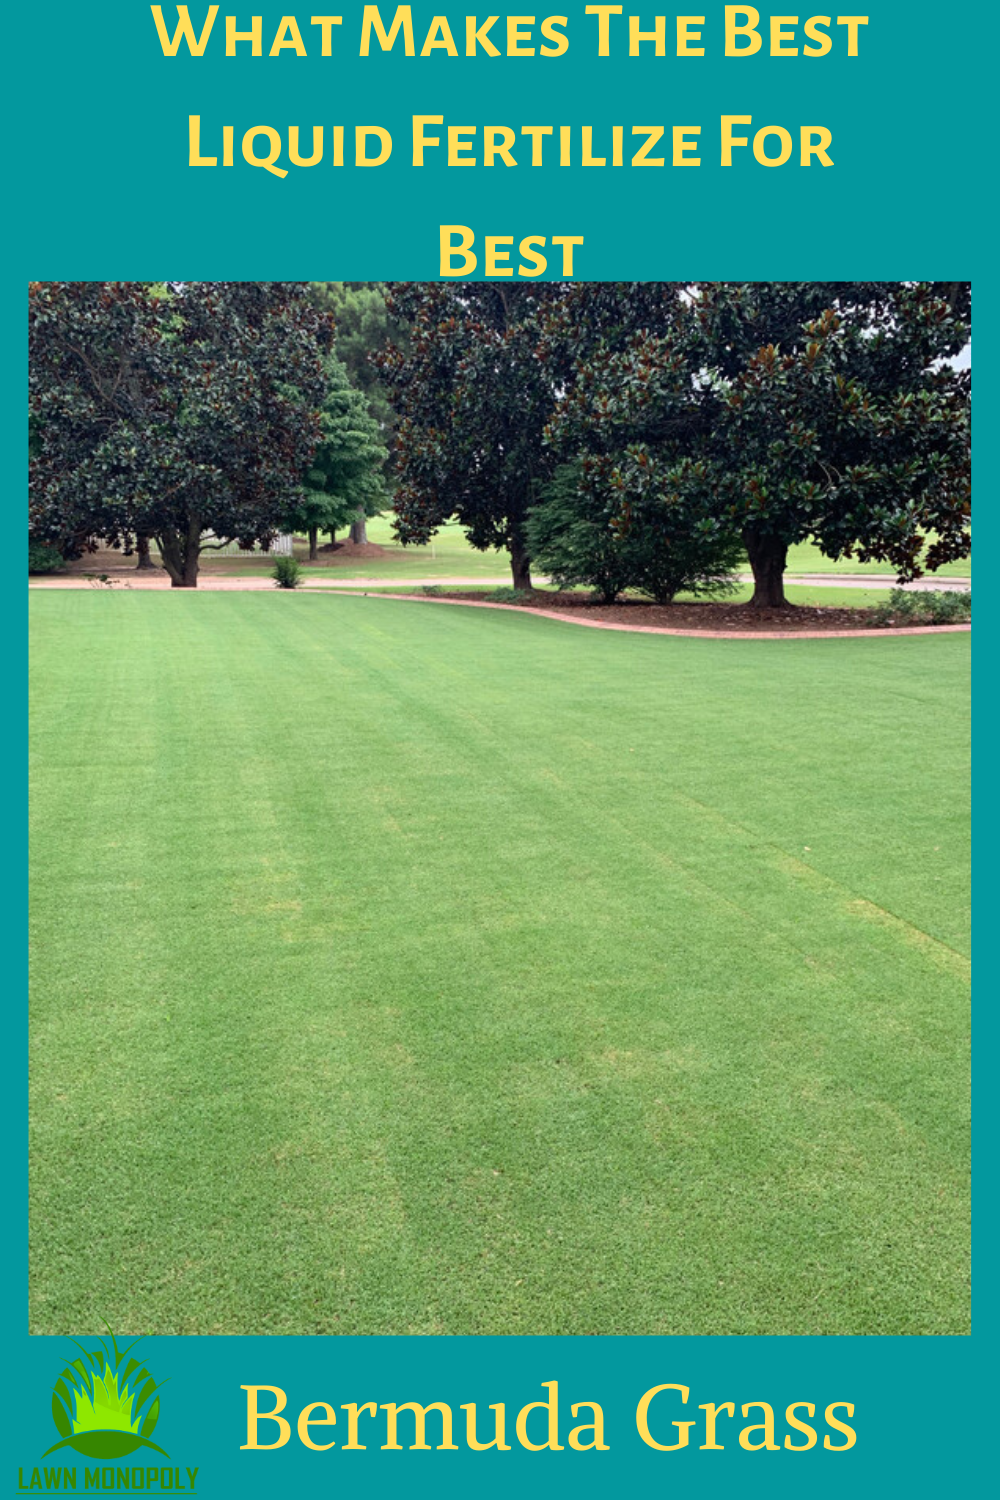 What Makes The Best Liquid Fertilize For Bermuda Grass In 2020 Bermuda Grass Bermuda Grass Care Grass Care